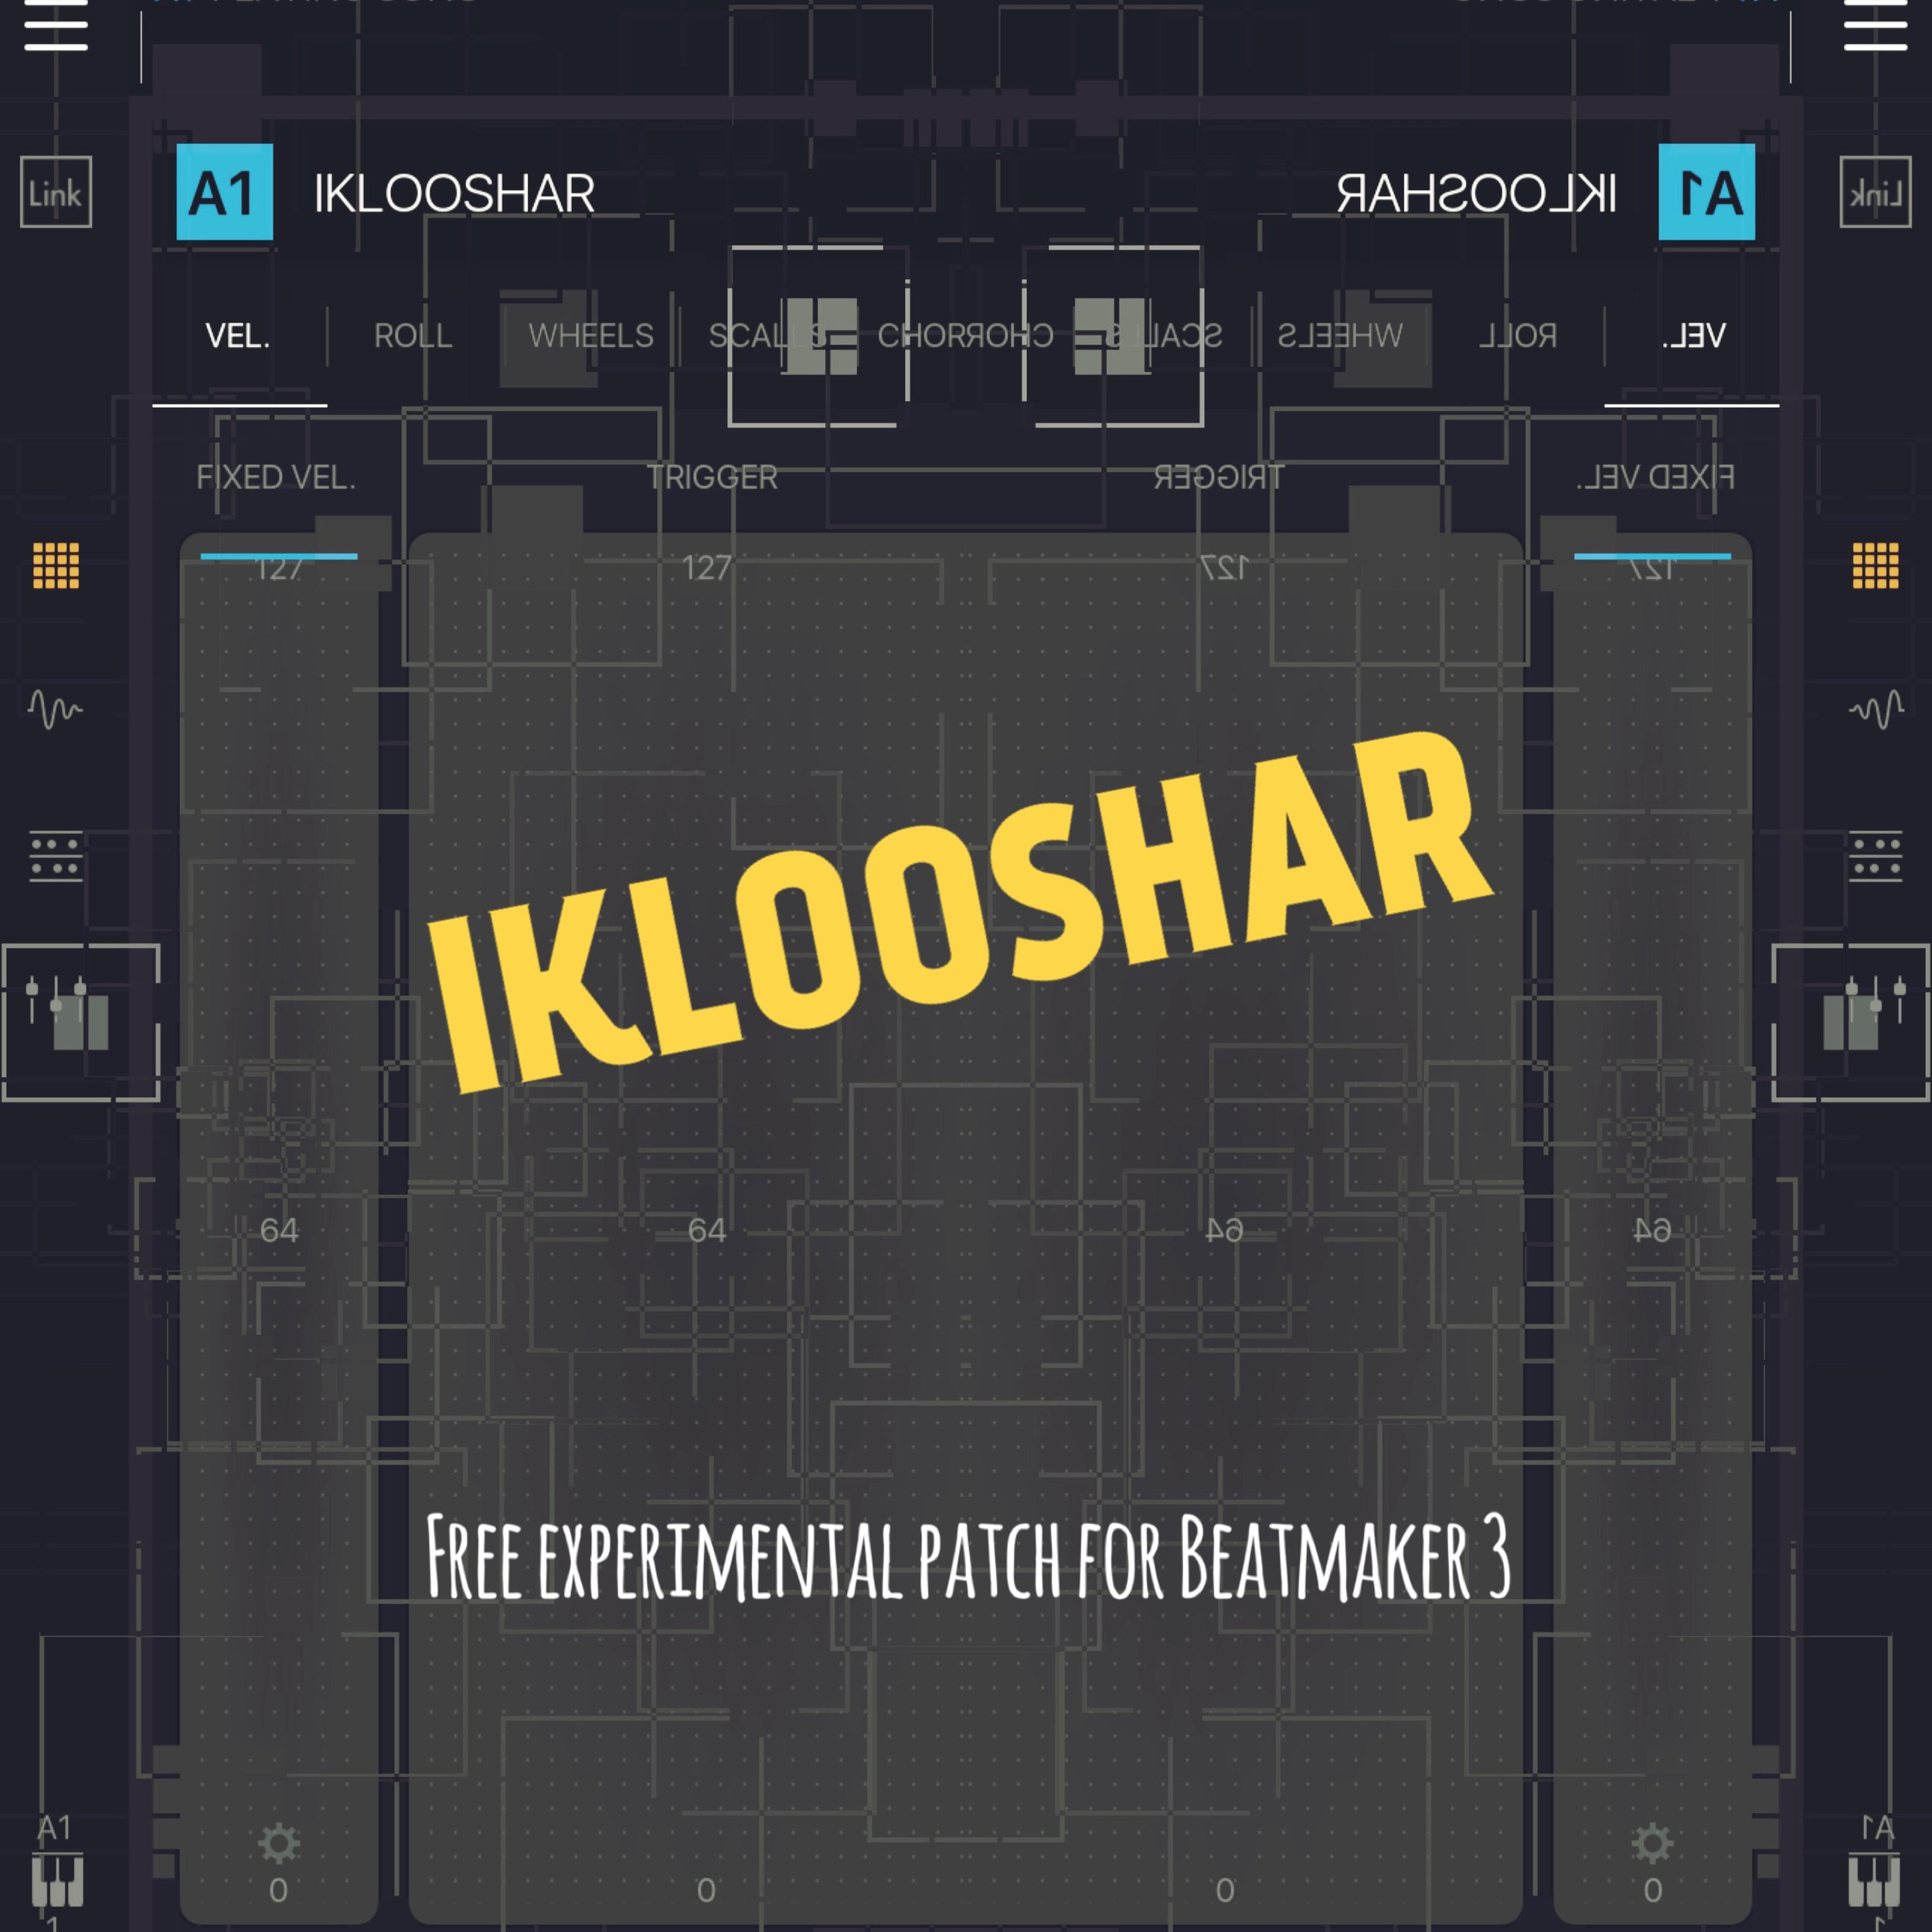 IKLOOSHAR - Free experimental patch for Beatmaker 3CLICK HERE TO DOWNLOADThis patch is an ultra-layered sound design experiment.The original source sample is from a saw being used in a puppet workshop!(Check out the video if you haven't already: https://.youtu.be/oqu2z2-V6u4)